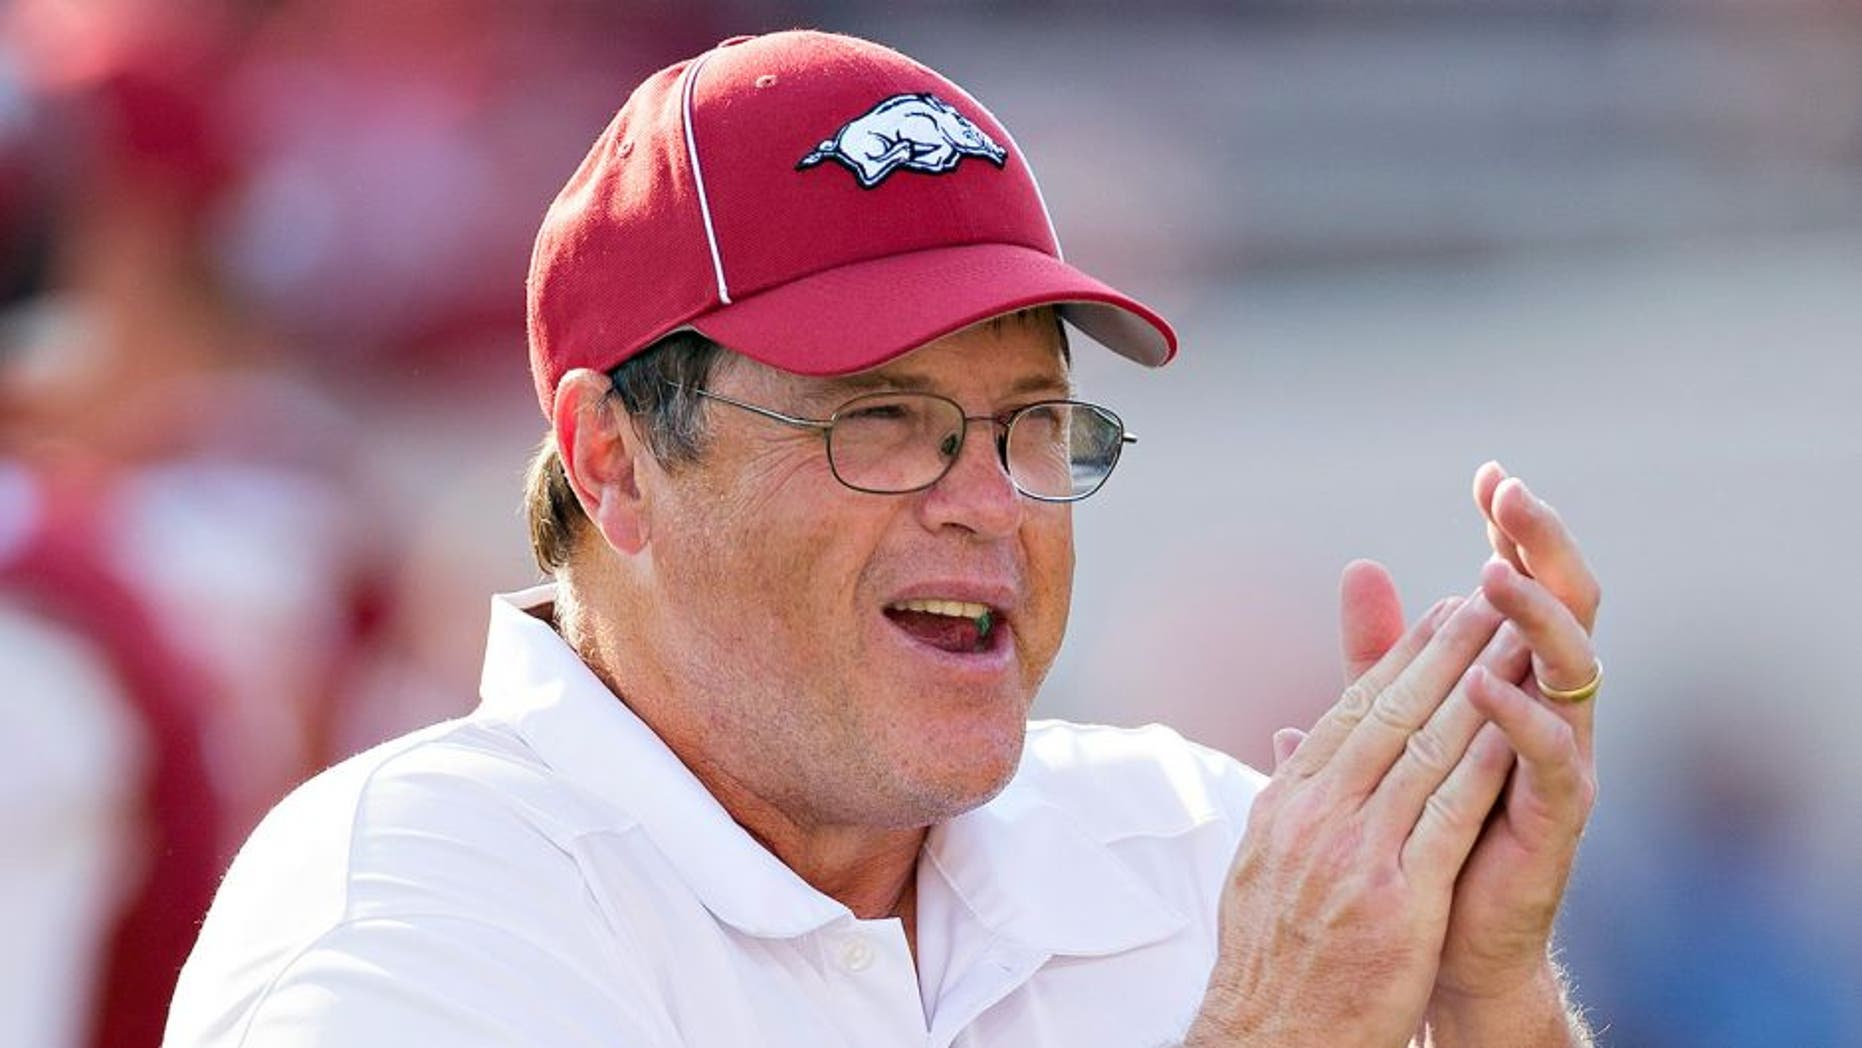 LITTLE ROCK, AR - SEPTEMBER 7: Offensive Coordinator Jim Chaney of the Arkansas Razorbacks watches the team warm up before a game against the Samford Bulldogs at War Memorial Stadium on September 7, 2013 in Little Rock, Arkansas. The Razorbacks defeated the Bulldogs 31-21. (Photo by Wesley Hitt/Getty Images)